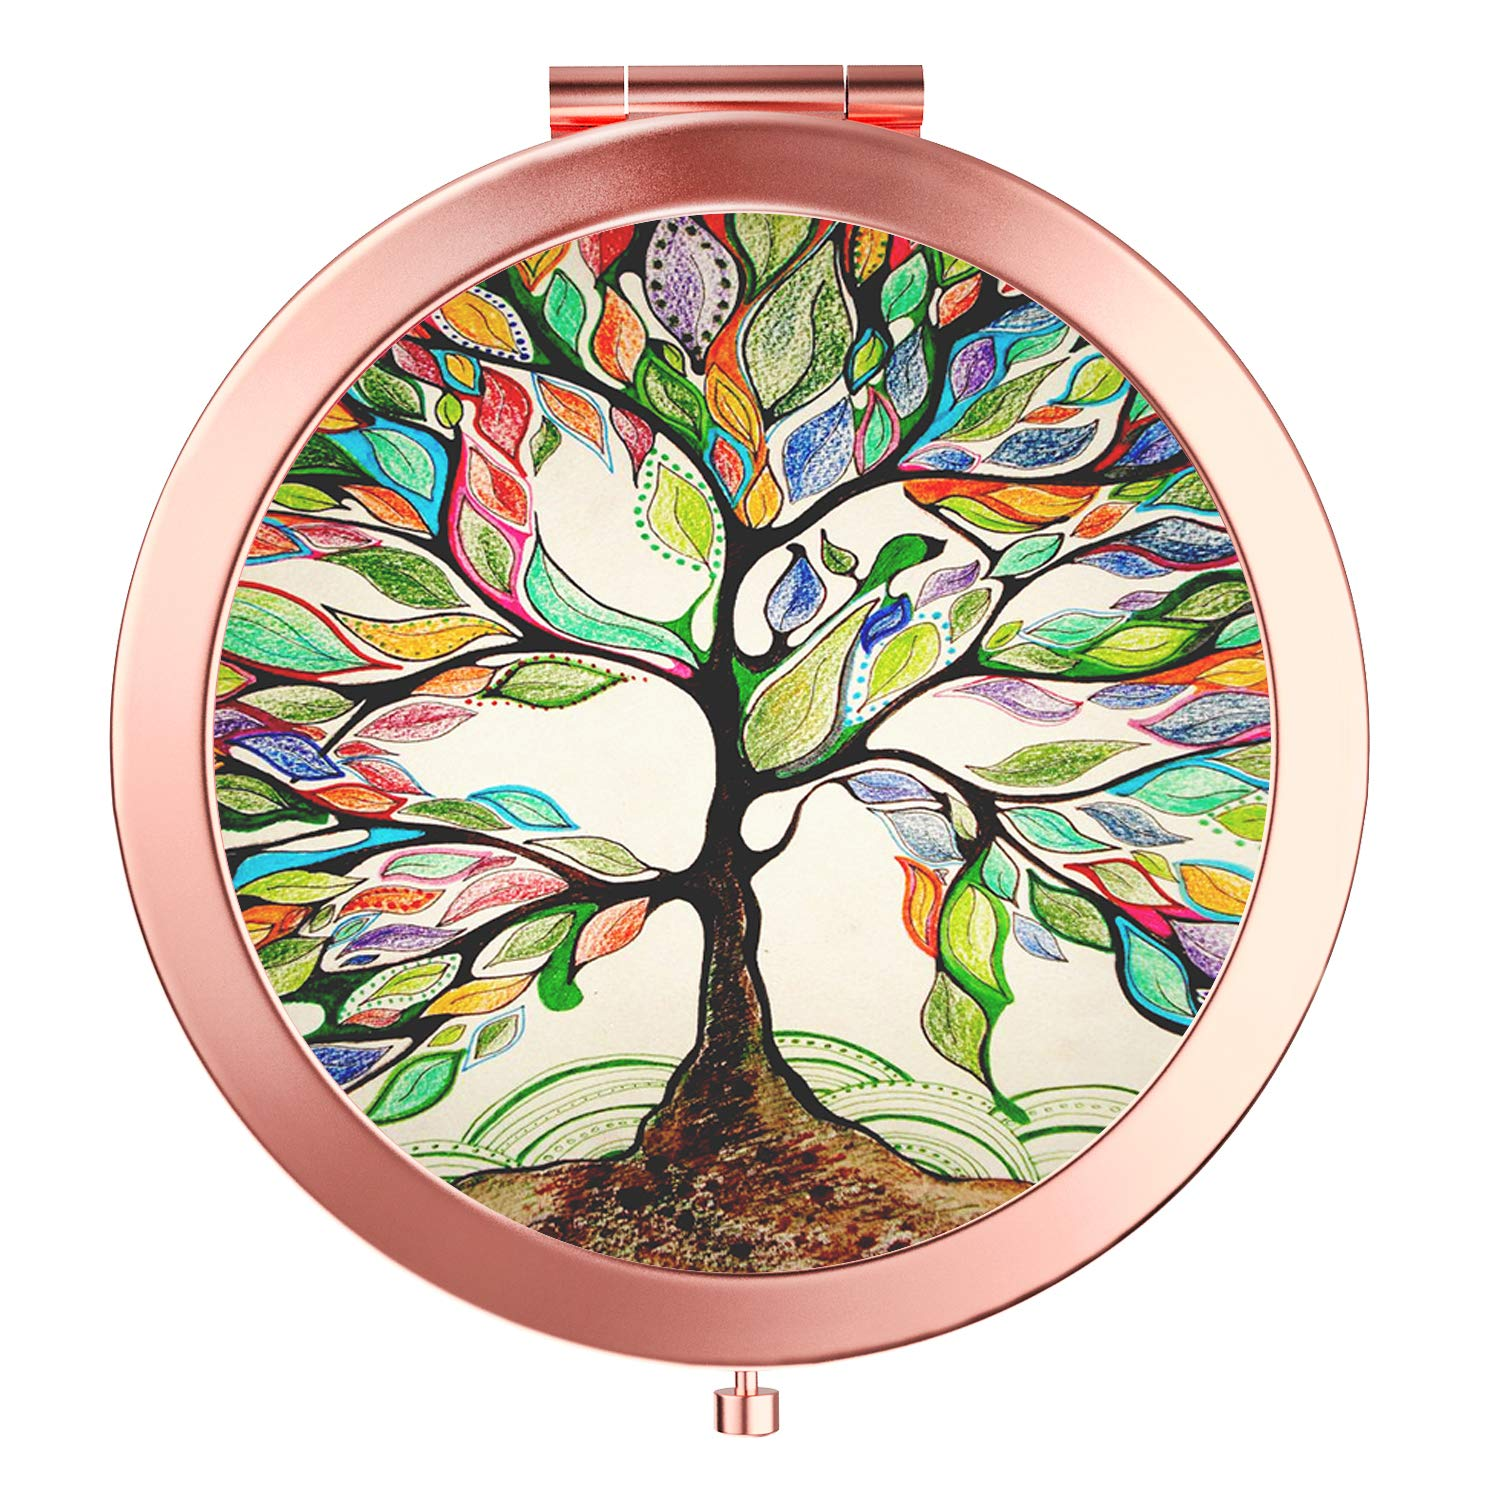 HeaLife Life Tree Makeup Mirror New Version Rose Gold Travel Purse Mirror Compact Double Sides 2x 1x Magnification Hand Mirror Metal Round Bohemian Mirror for Women and Girls